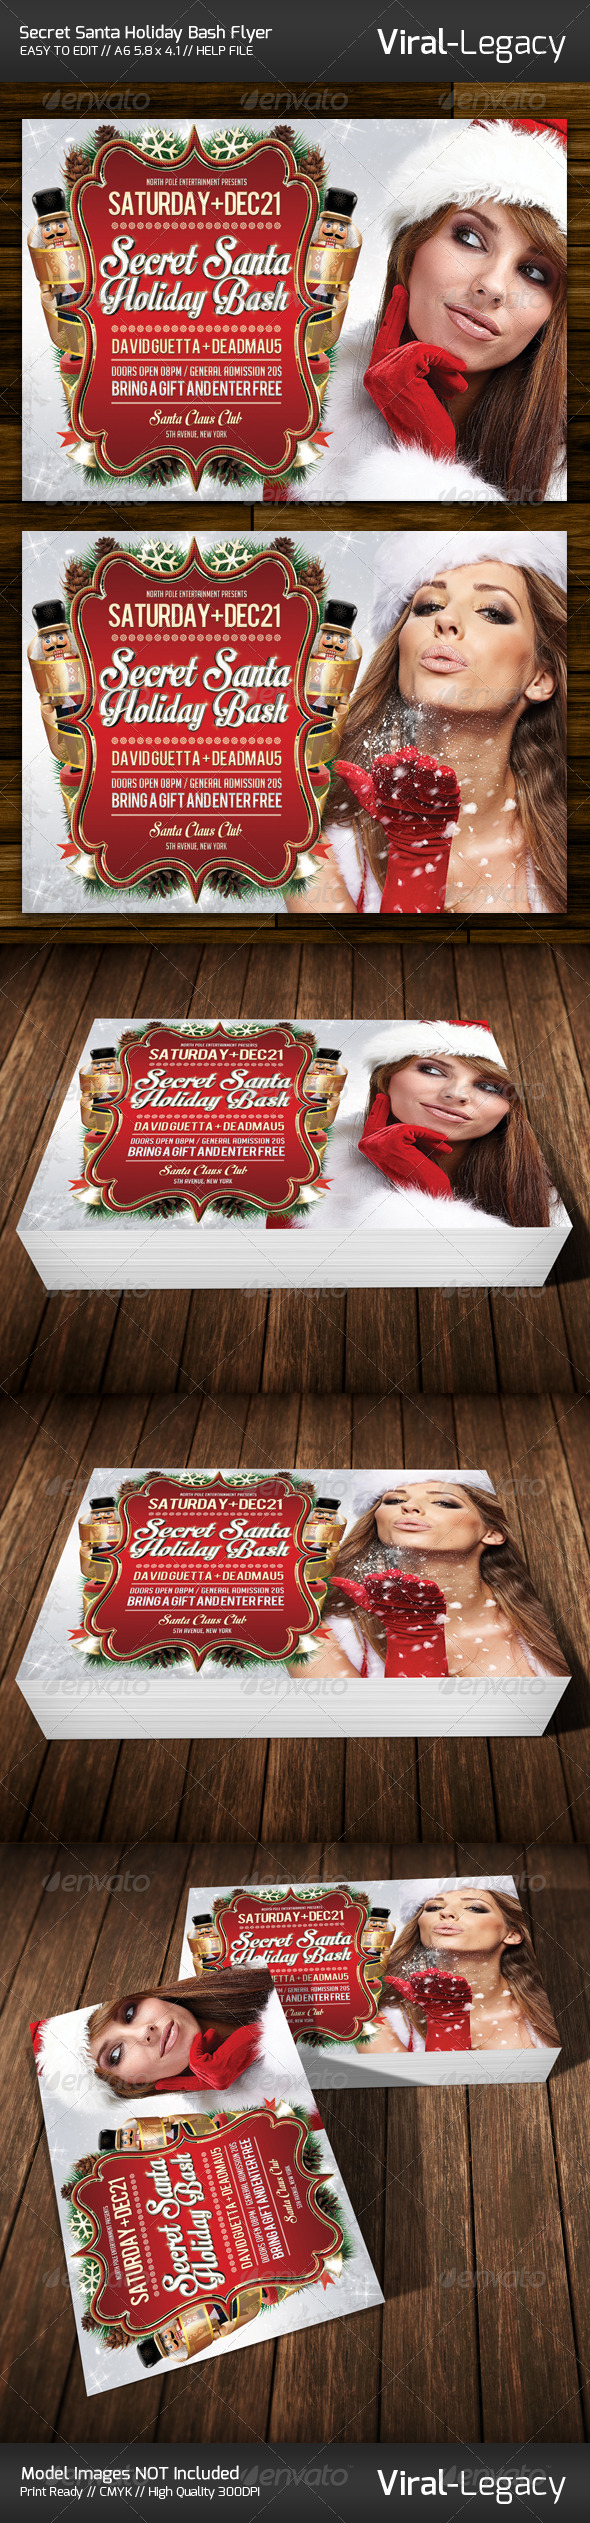 Secret Santa Holiday Bash Flyer - Clubs & Parties Events